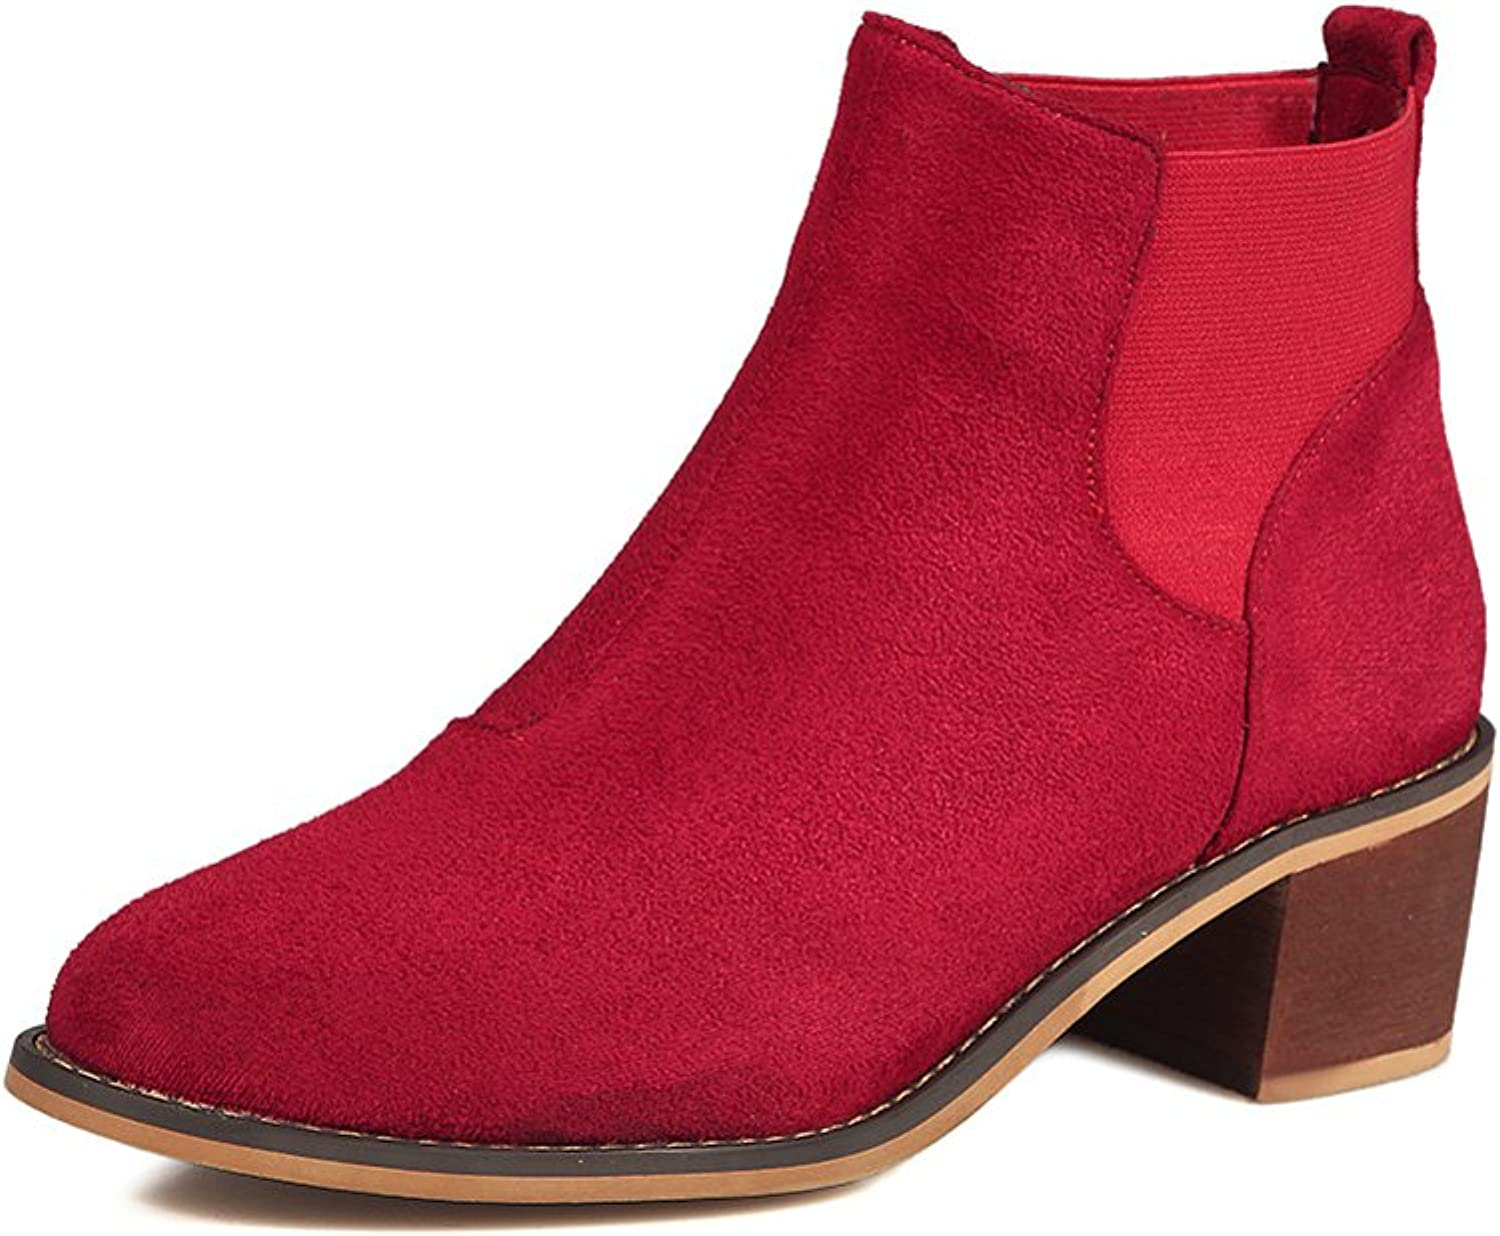 Lucksender Womens Fashion Pointed Toe Chunky Heel Chelsea Boots